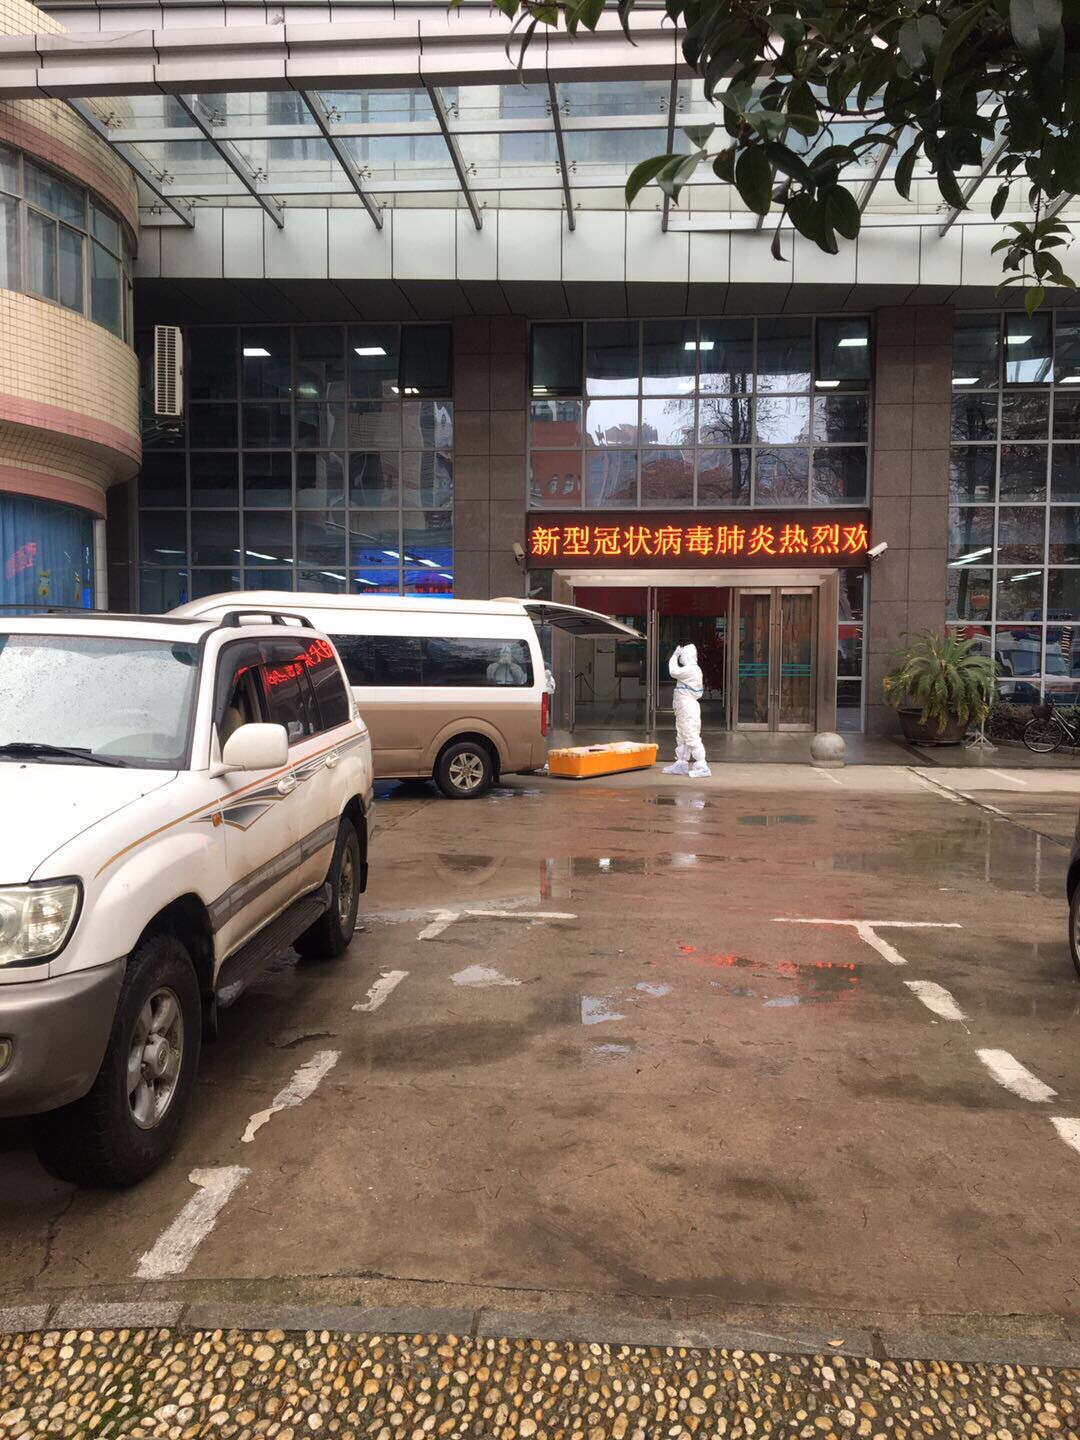 Mr. Yang sat in his car in front of a hospital, watching funeral workers load corpses into vehicles to be cremated. Every body was another empty bed and chance for his father's survival.